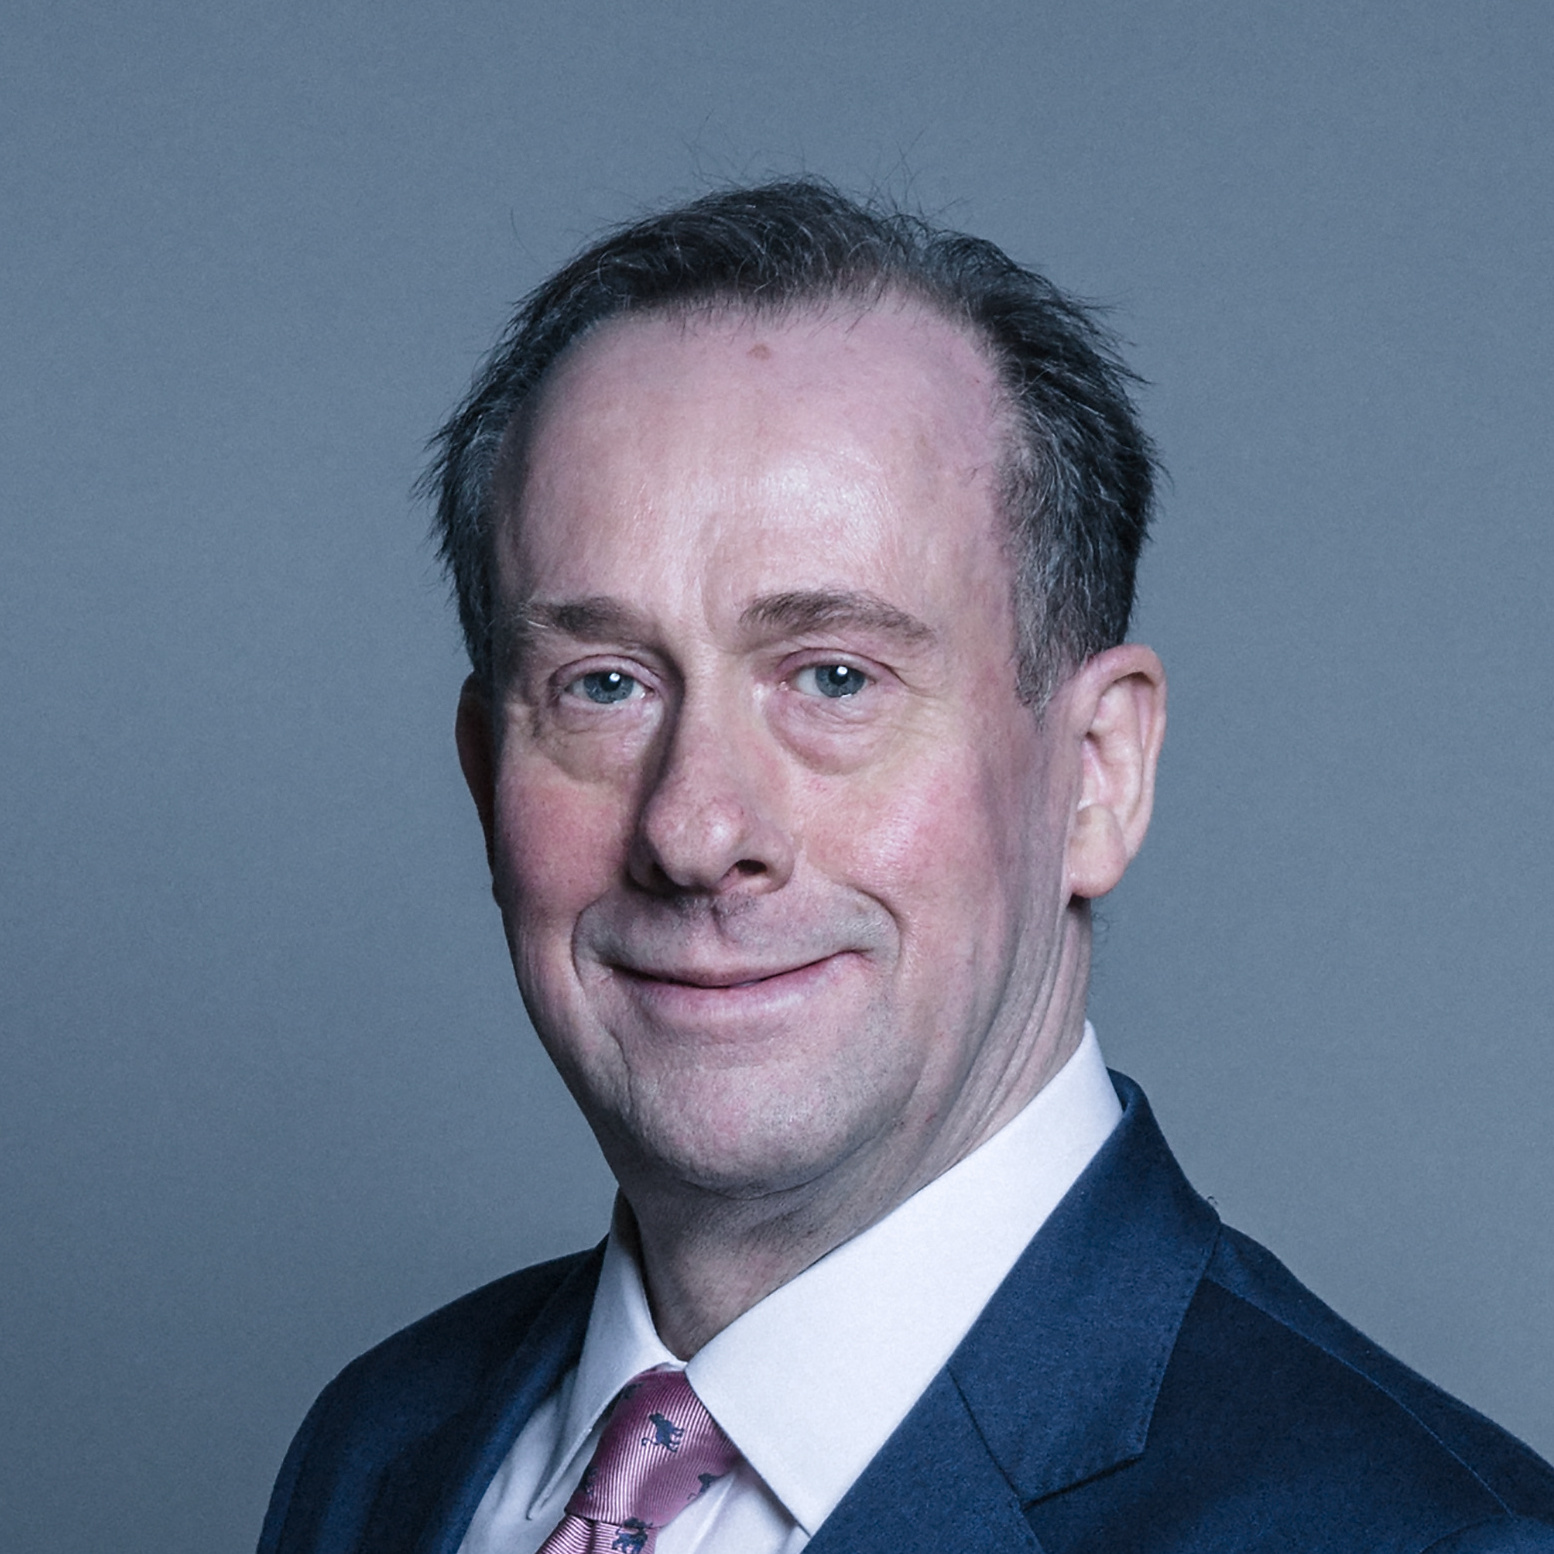 Lord Callanan Portrait